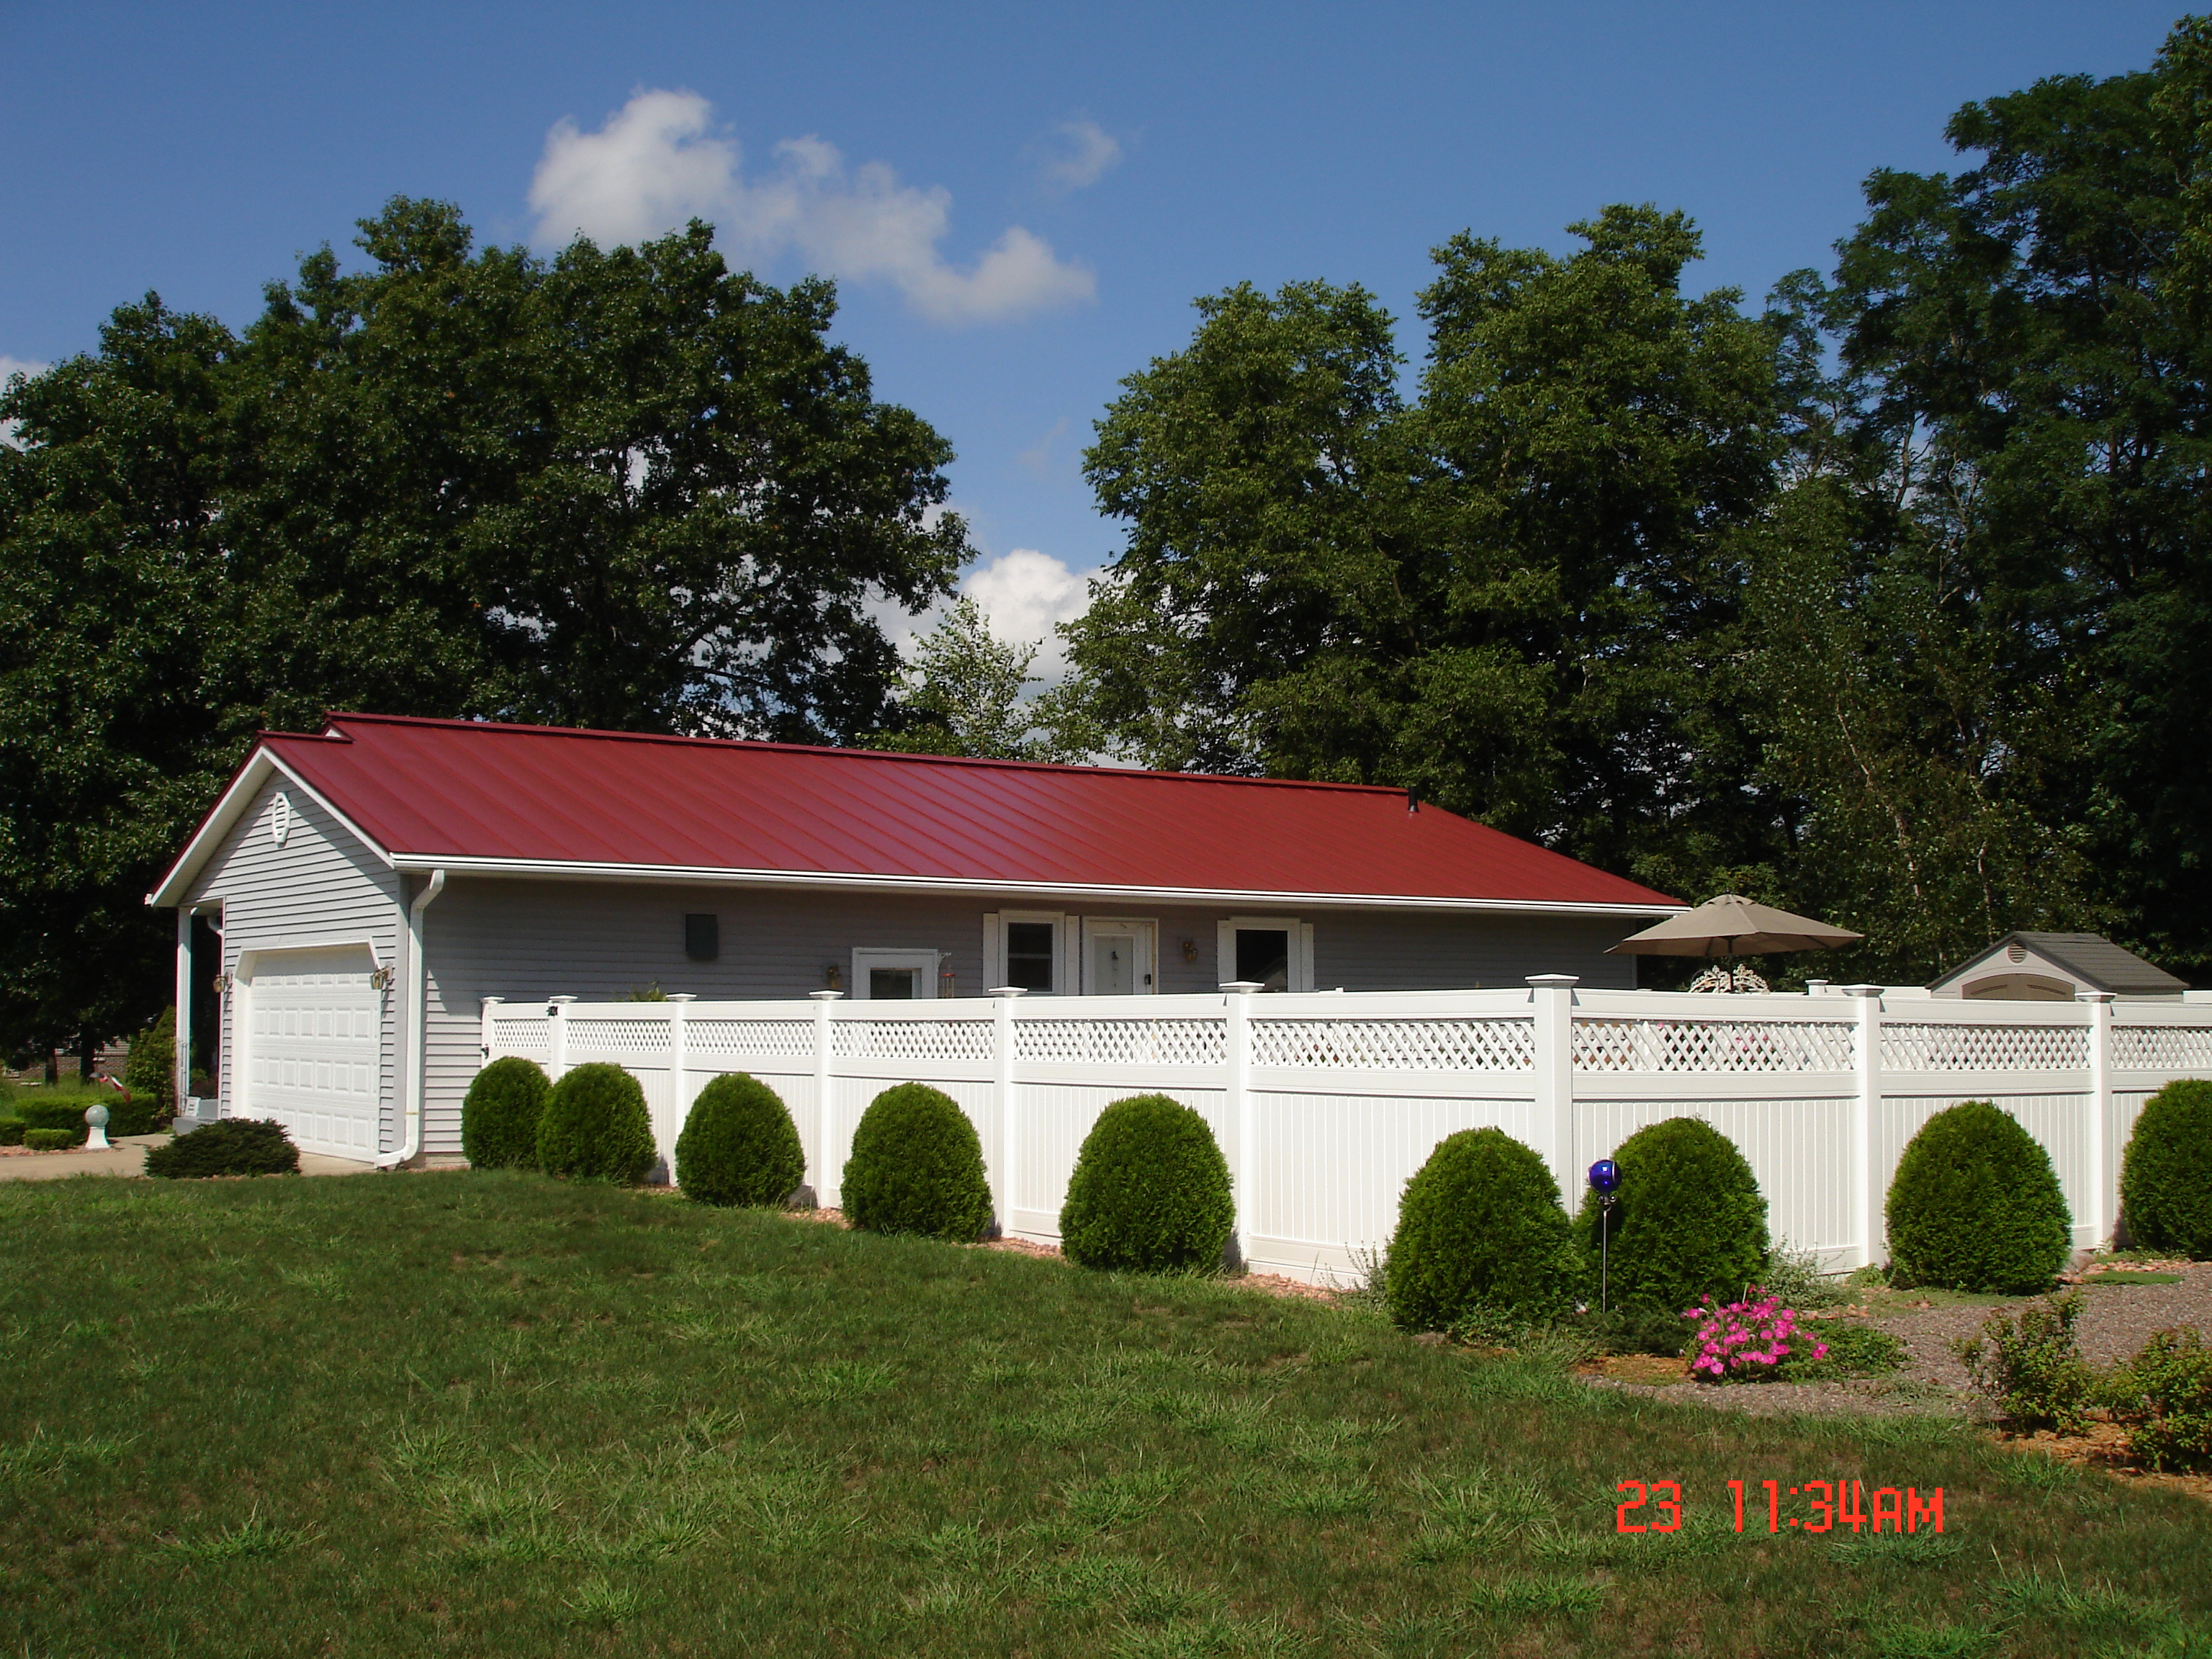 sheet Metal standing seam Roofing red colonial residential house wisconsin iowa illinois minnesota north dakota